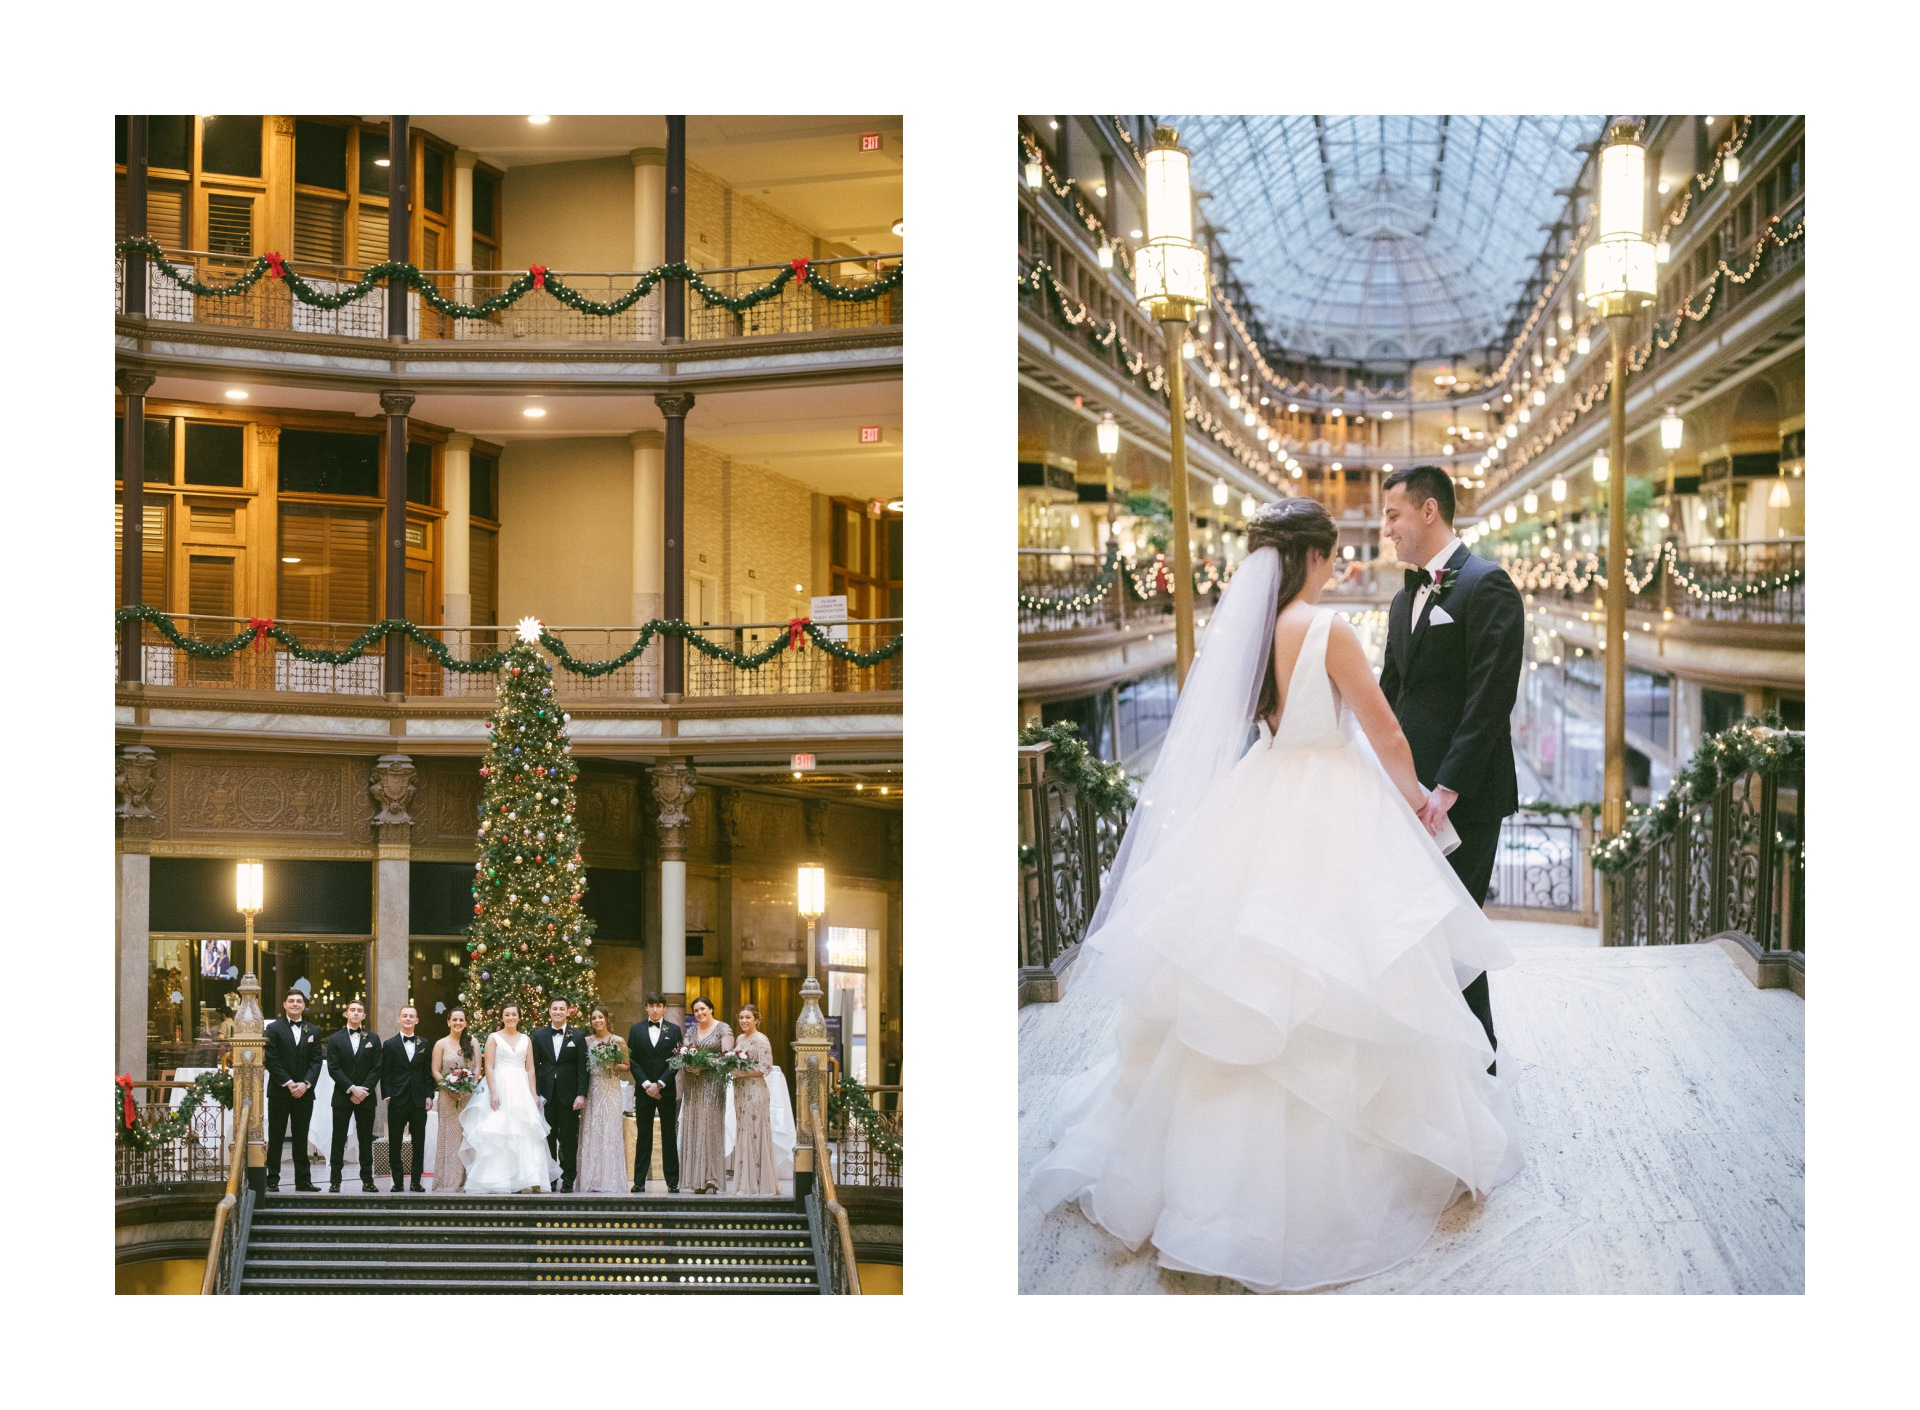 Hyatt Old Arcade Wedding Photographer in Cleveland 1 38.jpg